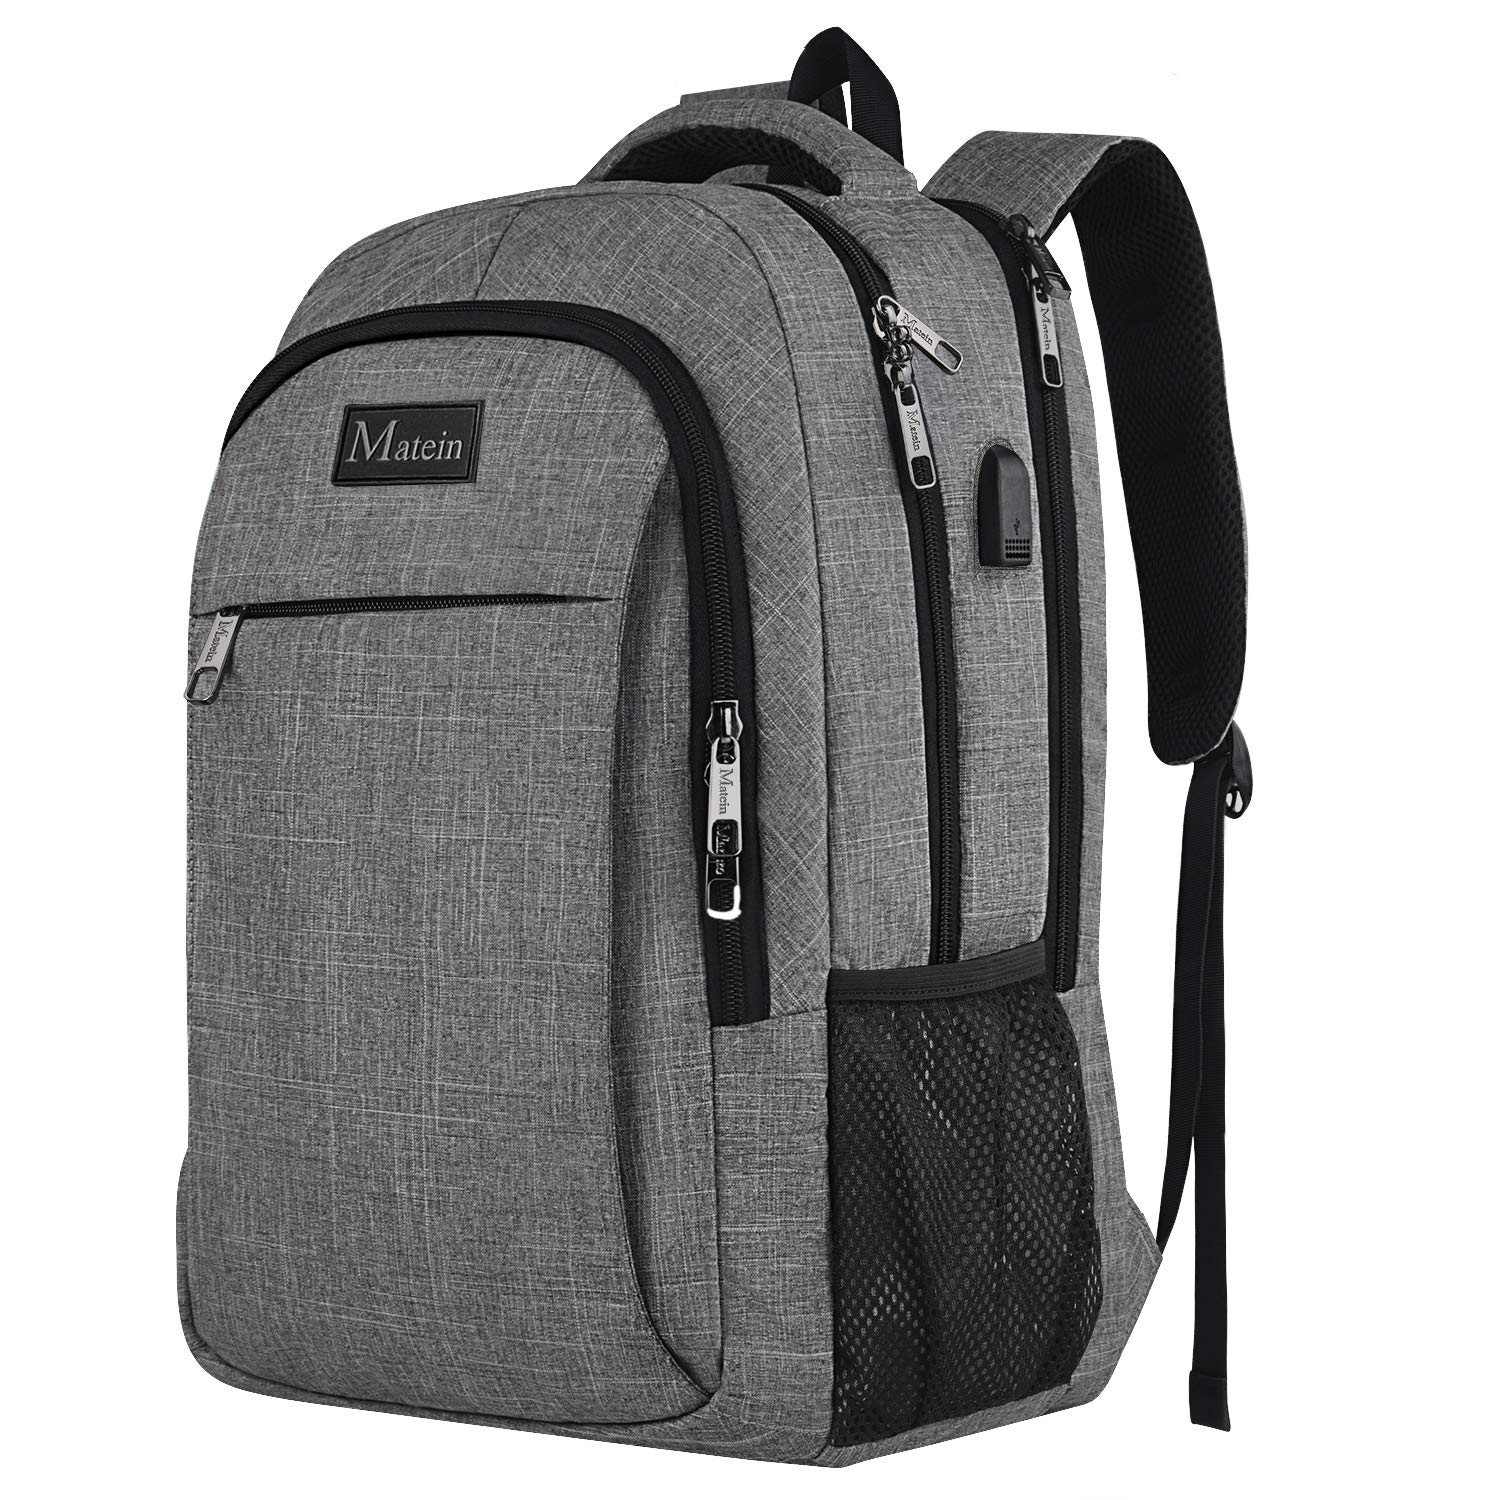 626ffe626a8 Travel Laptop Backpack, Professional Business Backpack Bag with USB  Charging Port, Slim Lightweight Laptop Bag, Water Resistant School Rucksack  for Women ...